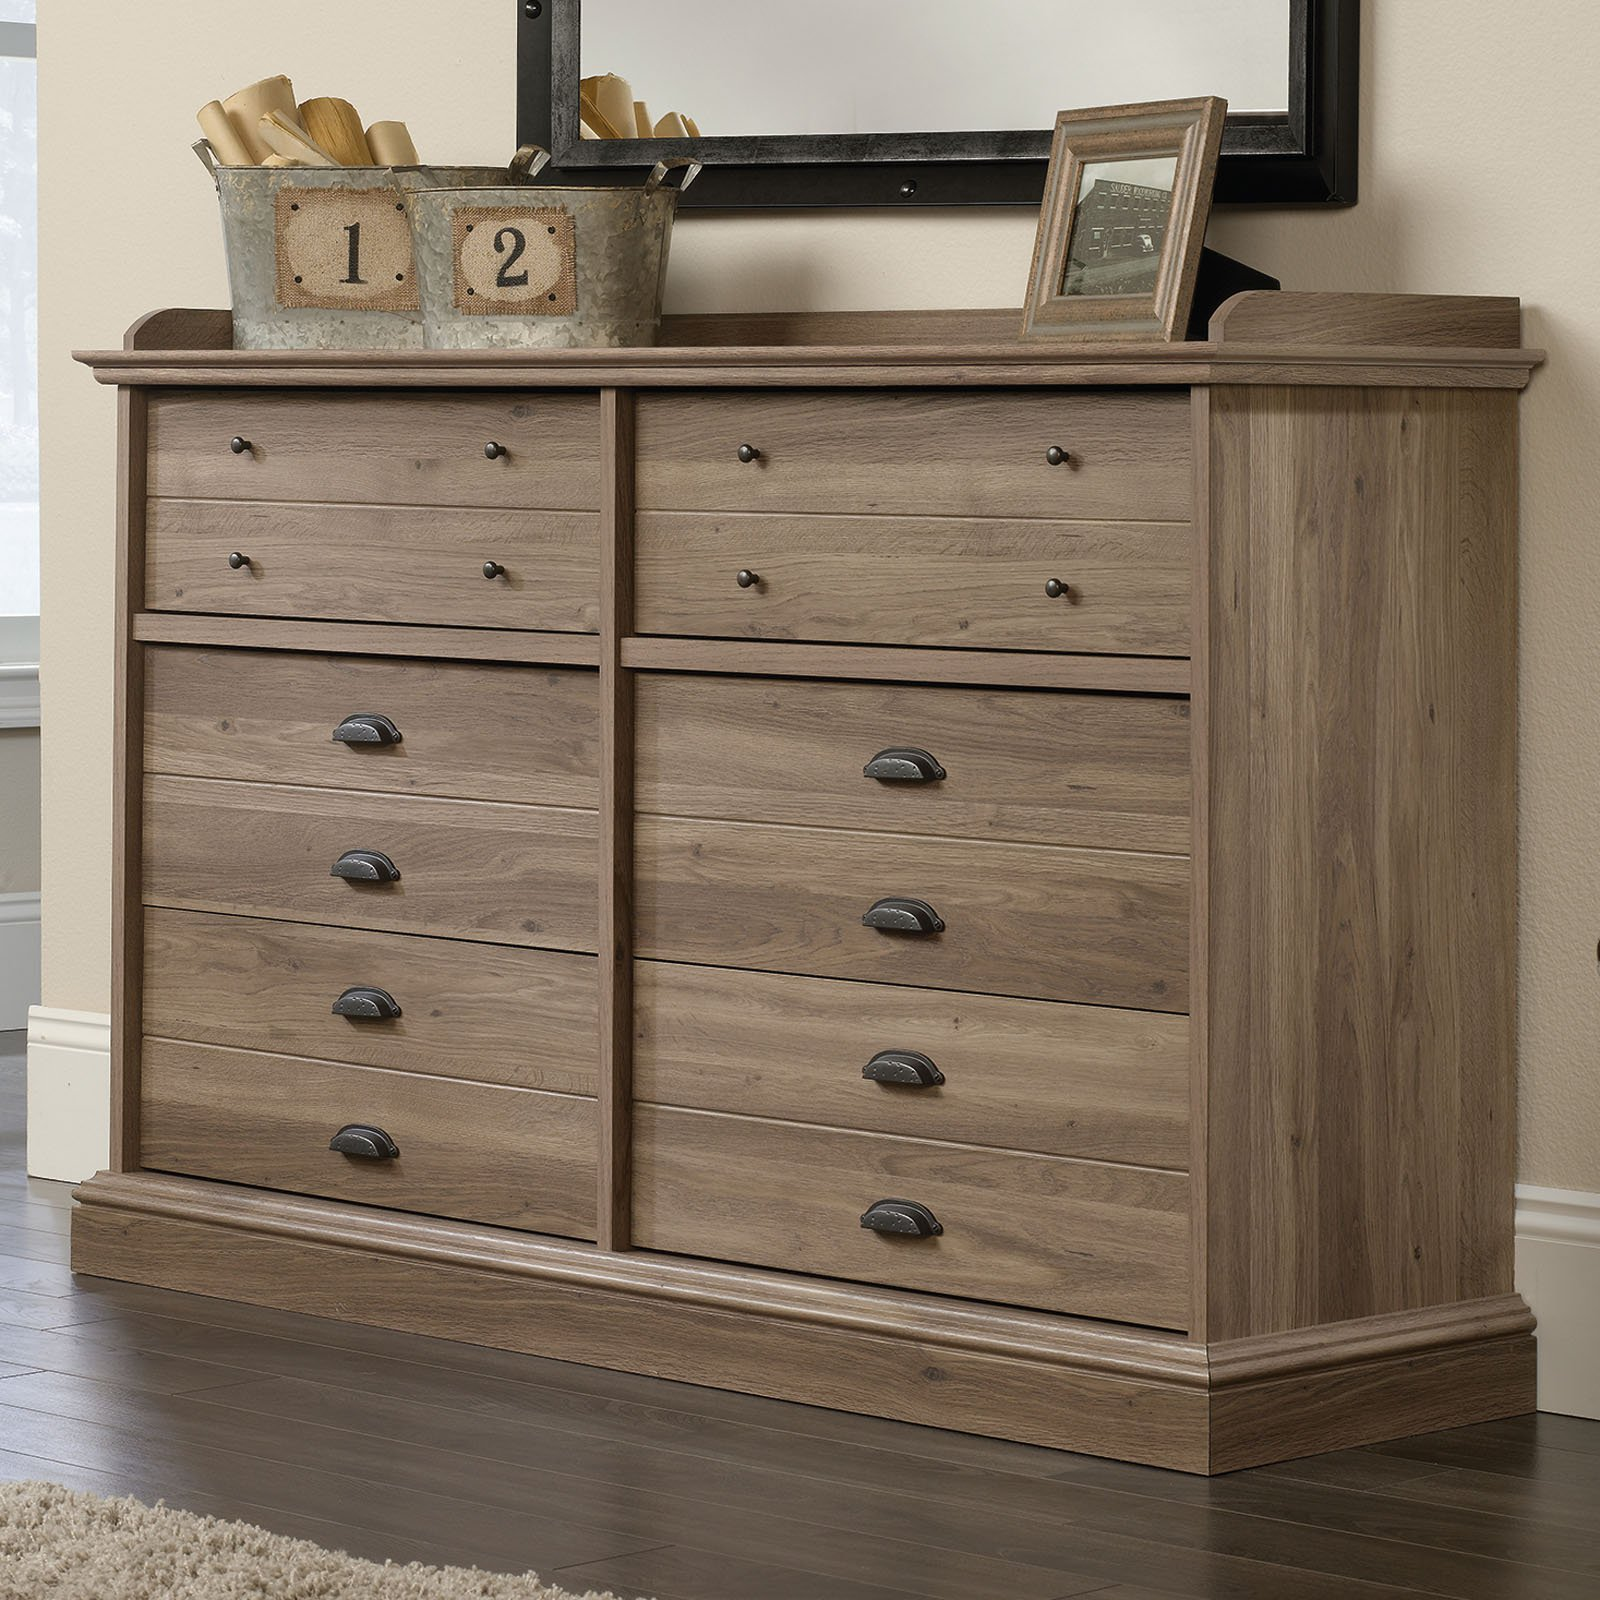 Sauder Barrister Lane 6 Drawer Dresser by Sauder